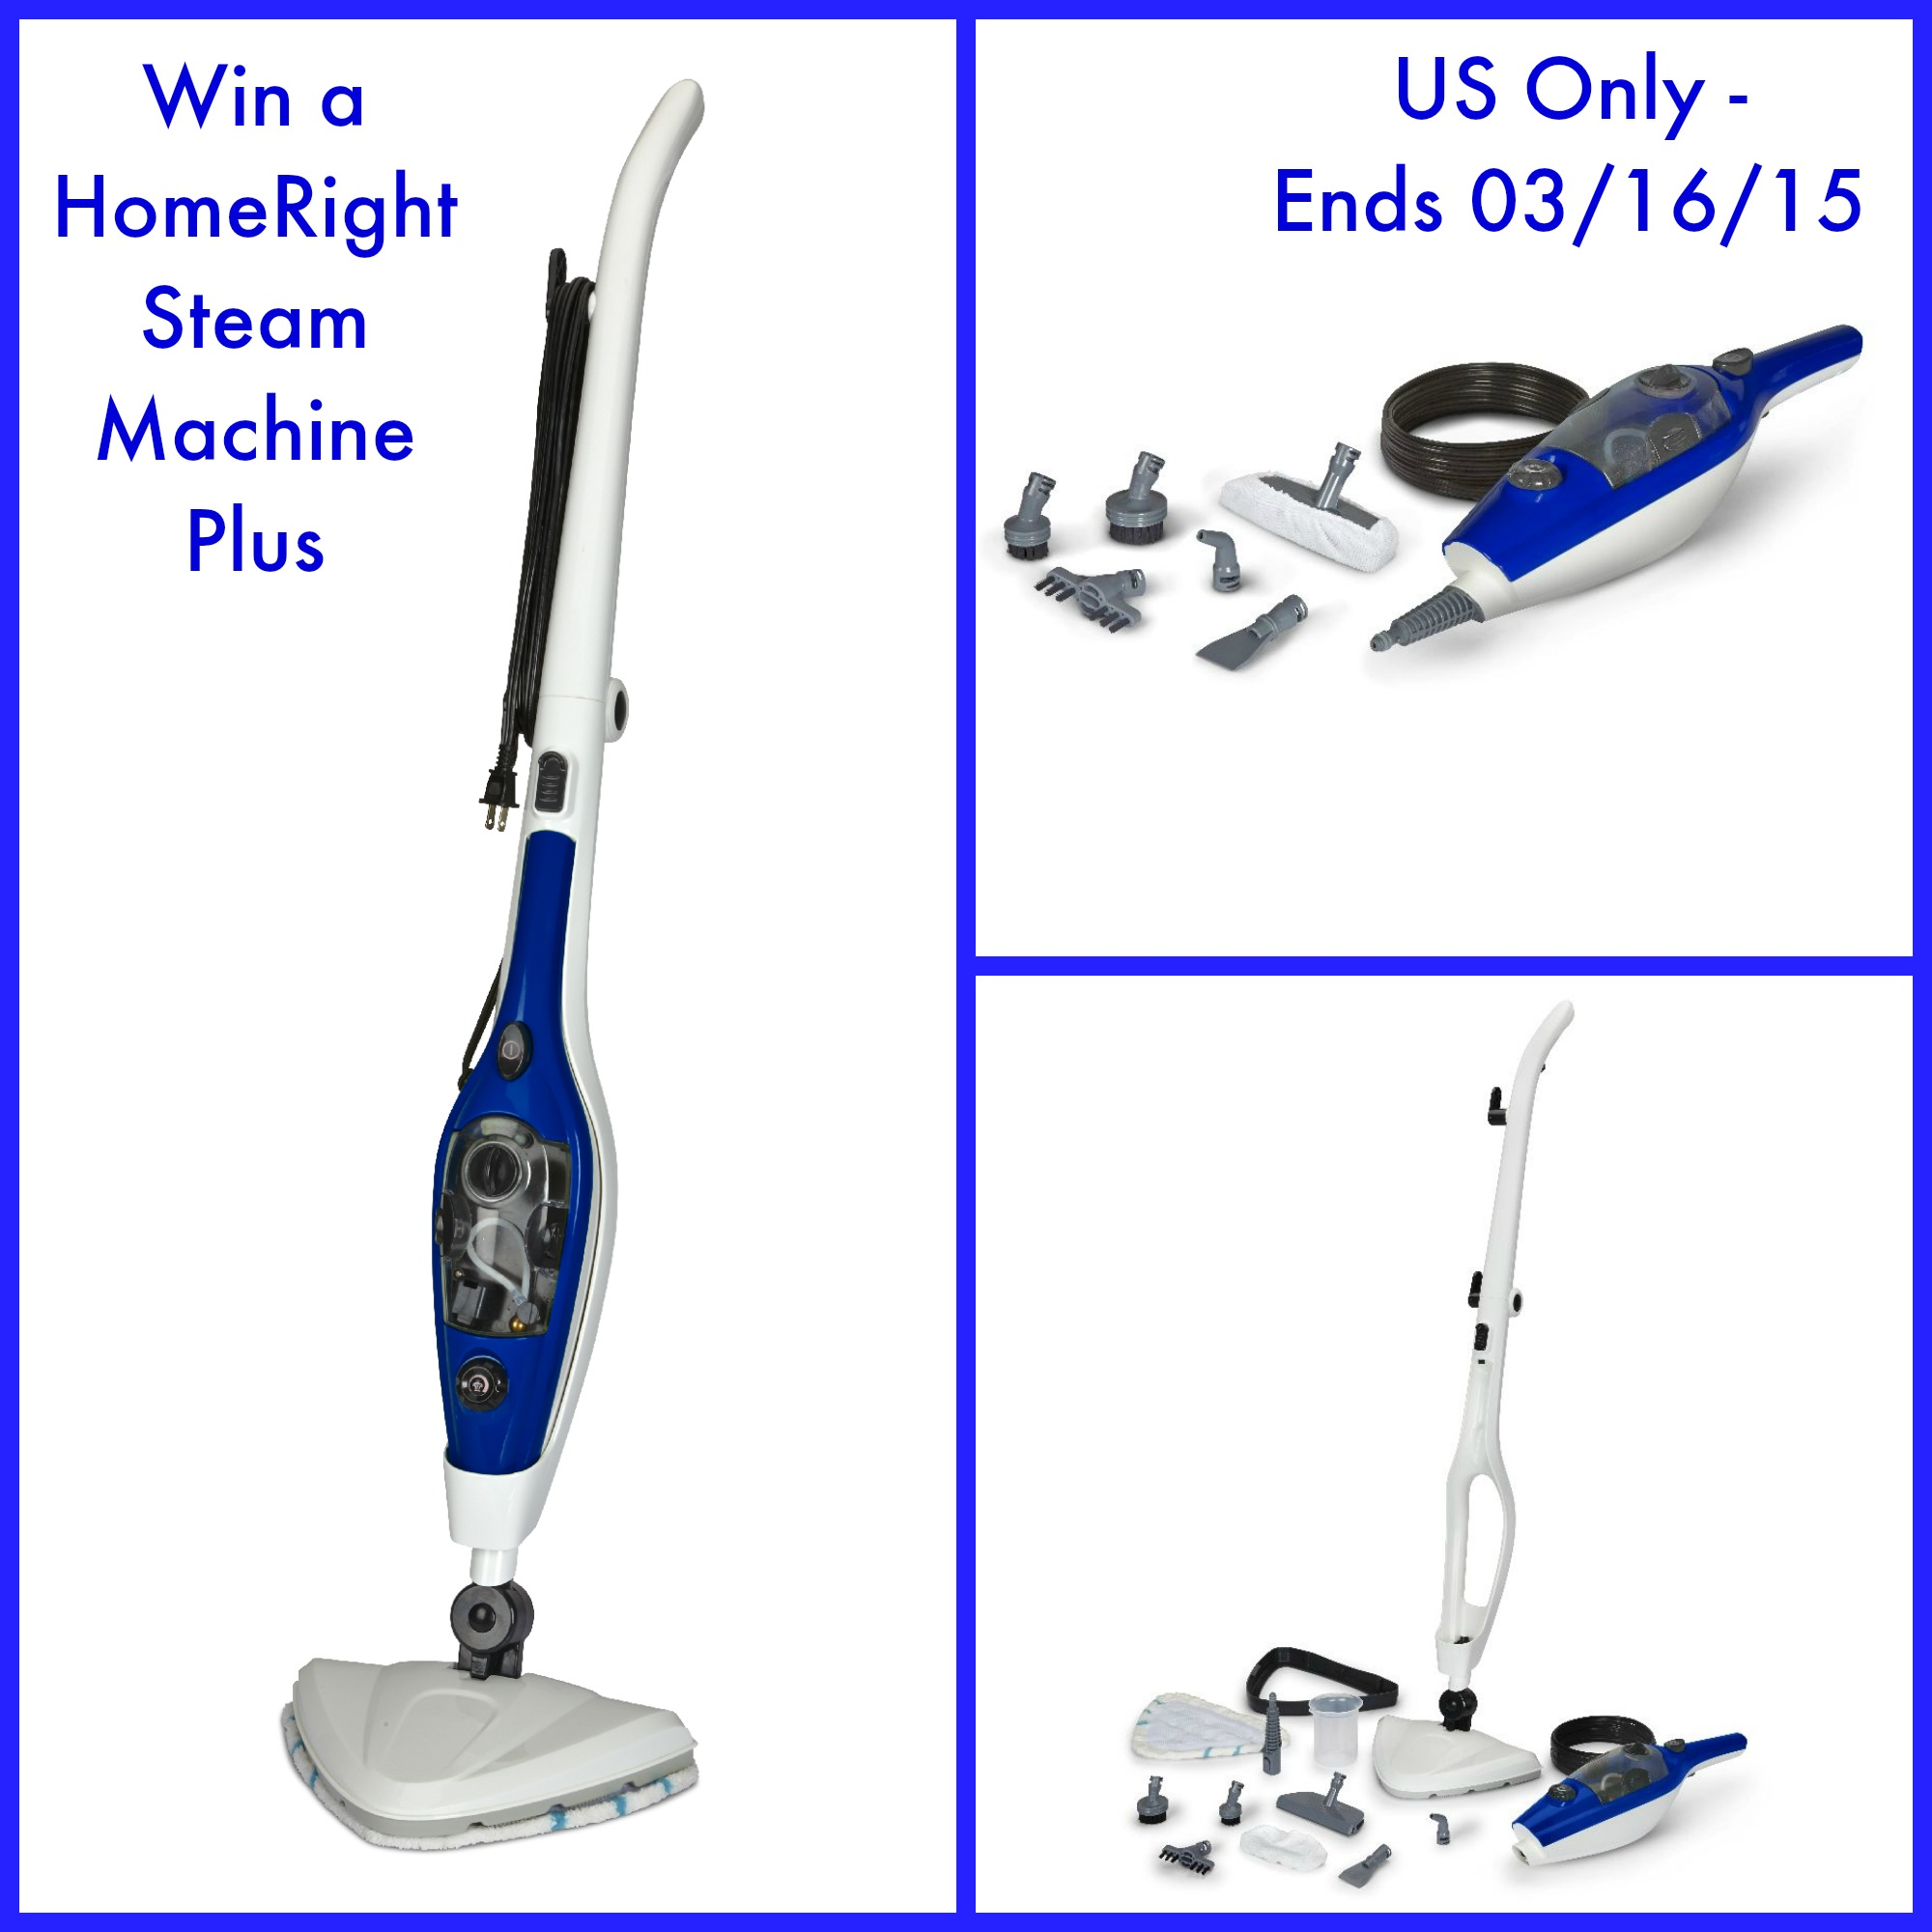 Enter the HomeRight SteamMachine Plus Multi-Purpose Steam Mop Giveaway. Ends 3/16